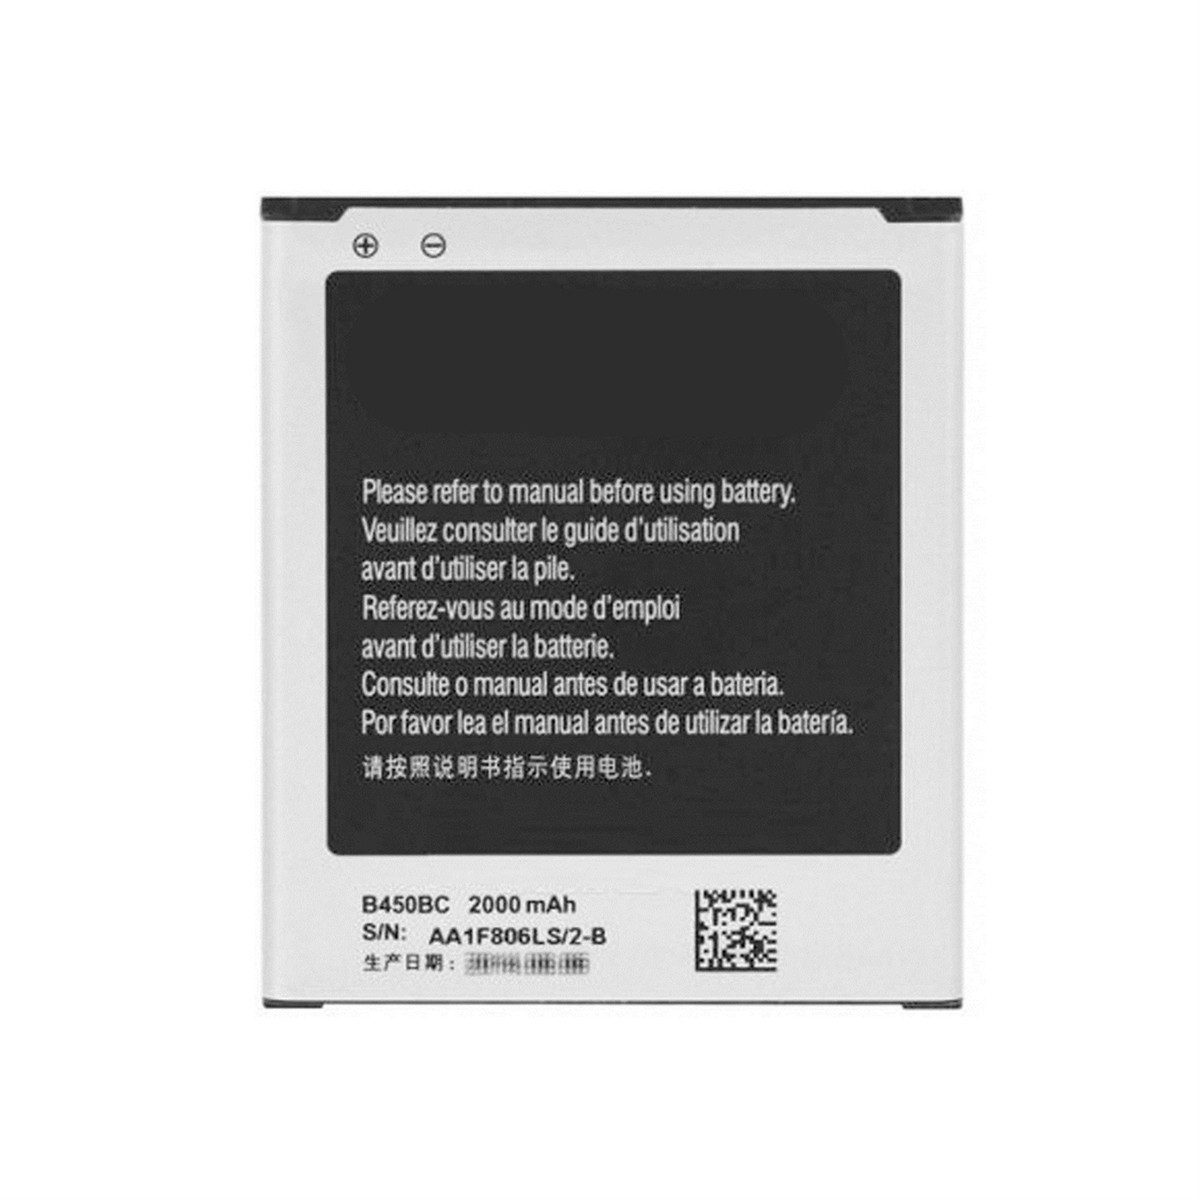 Cell Phone Battery for SAMSUNG GALAXY CORE LTE G3518F B450BC 2000mAh